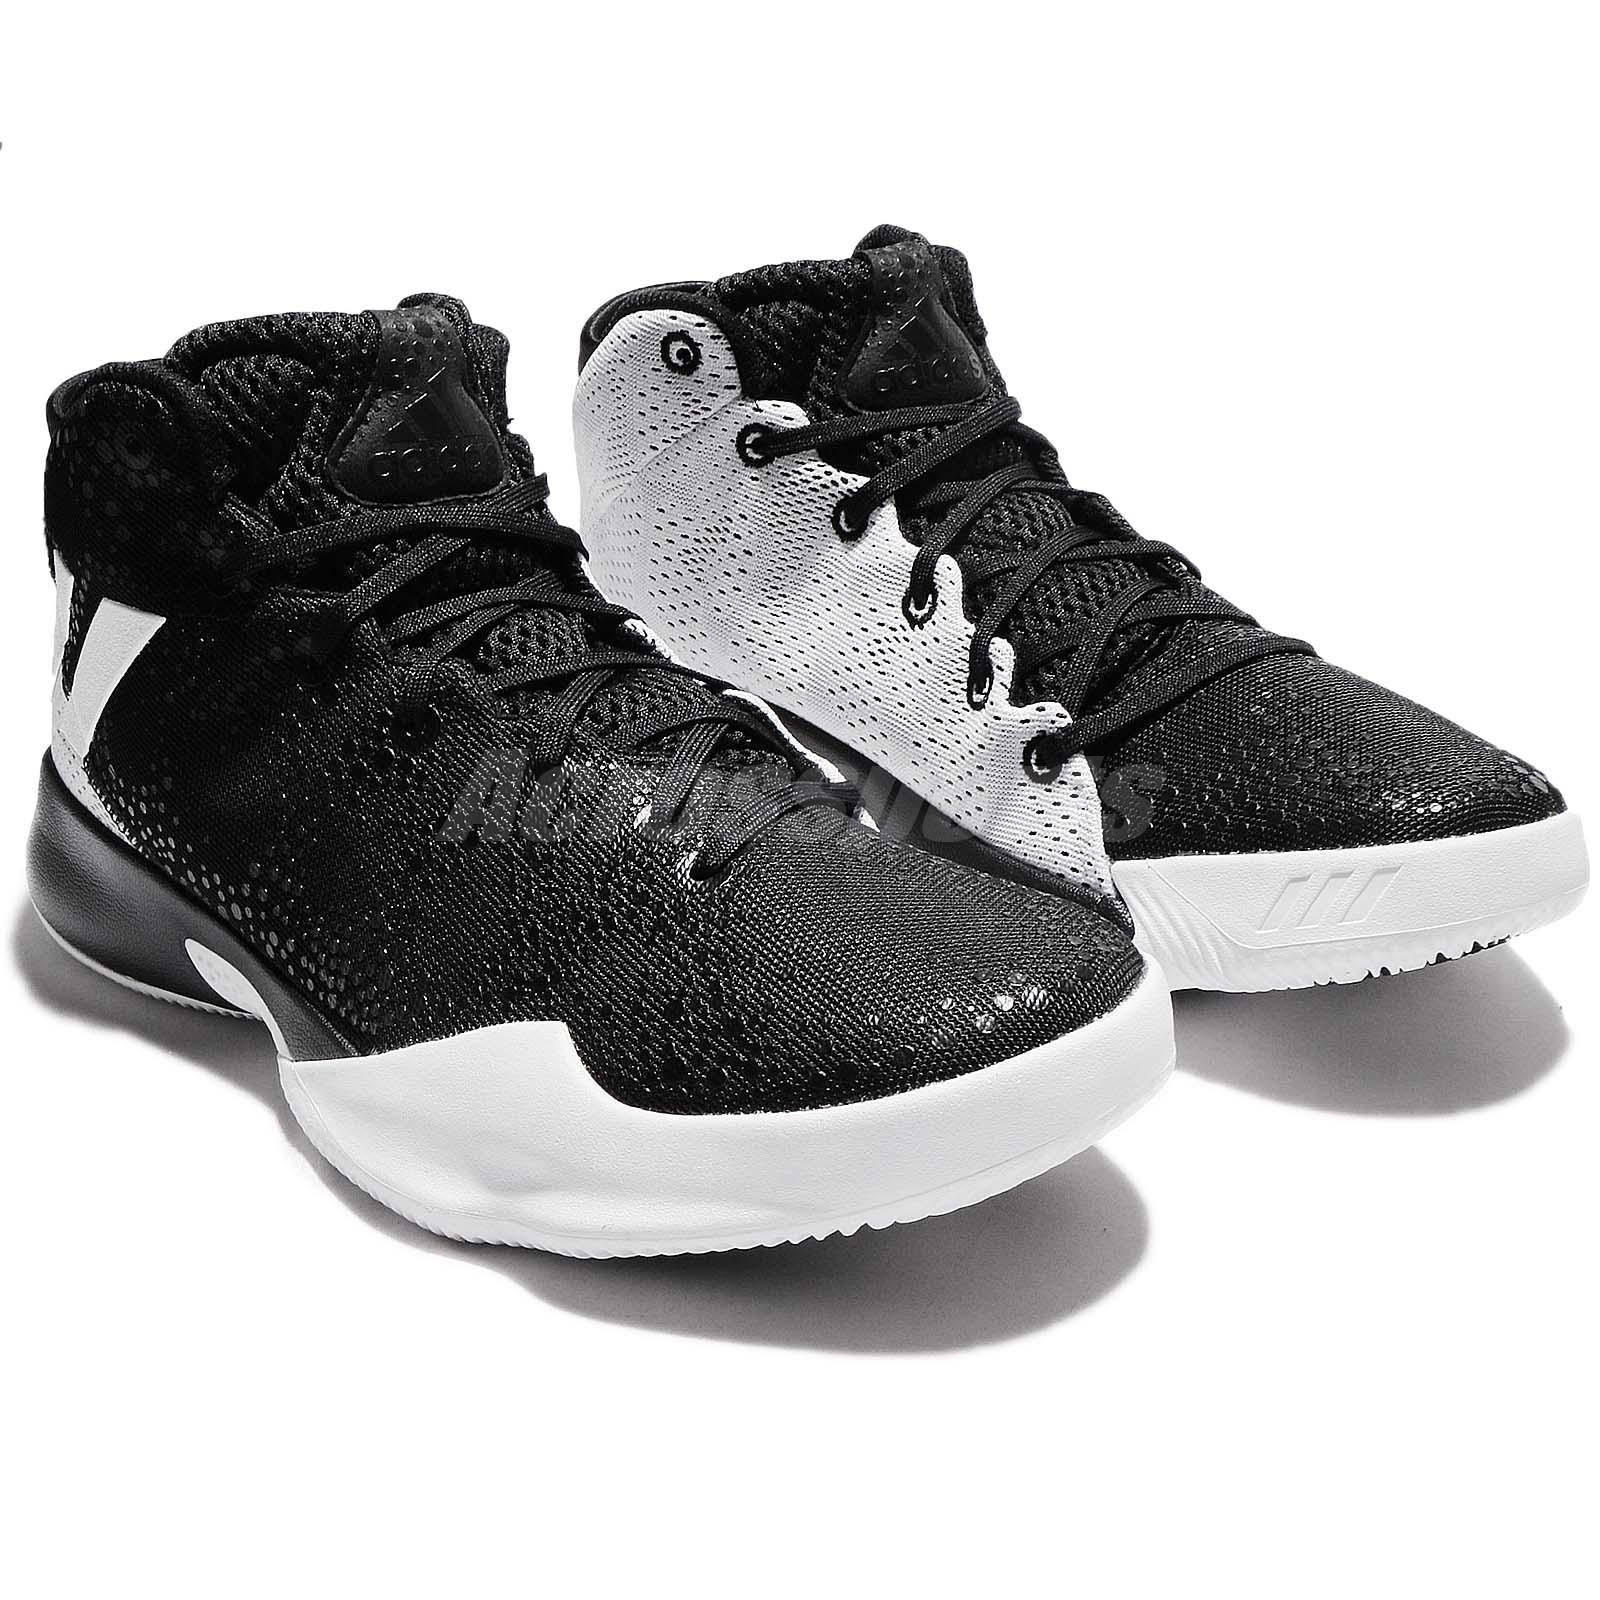 ffd1617eca42 adidas Crazy Heat Black White Men Basketball Shoes Sneakers BY4530 ...